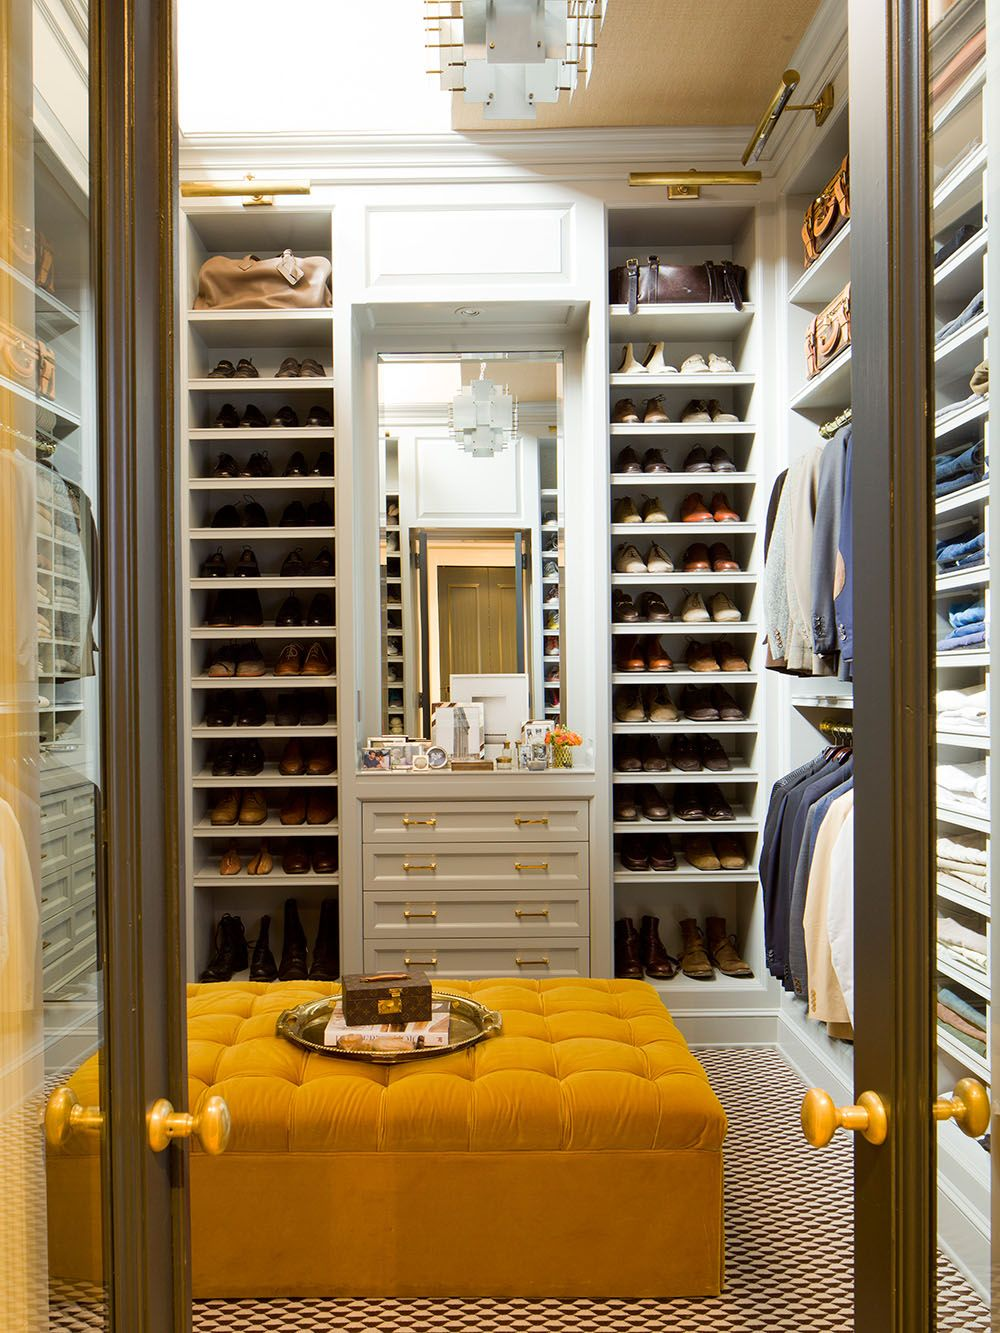 30 Walkin Closet Ideas For Men Who Love Their Imagestudioaflo Stunning Bedroom Walk In Closet Designs Review